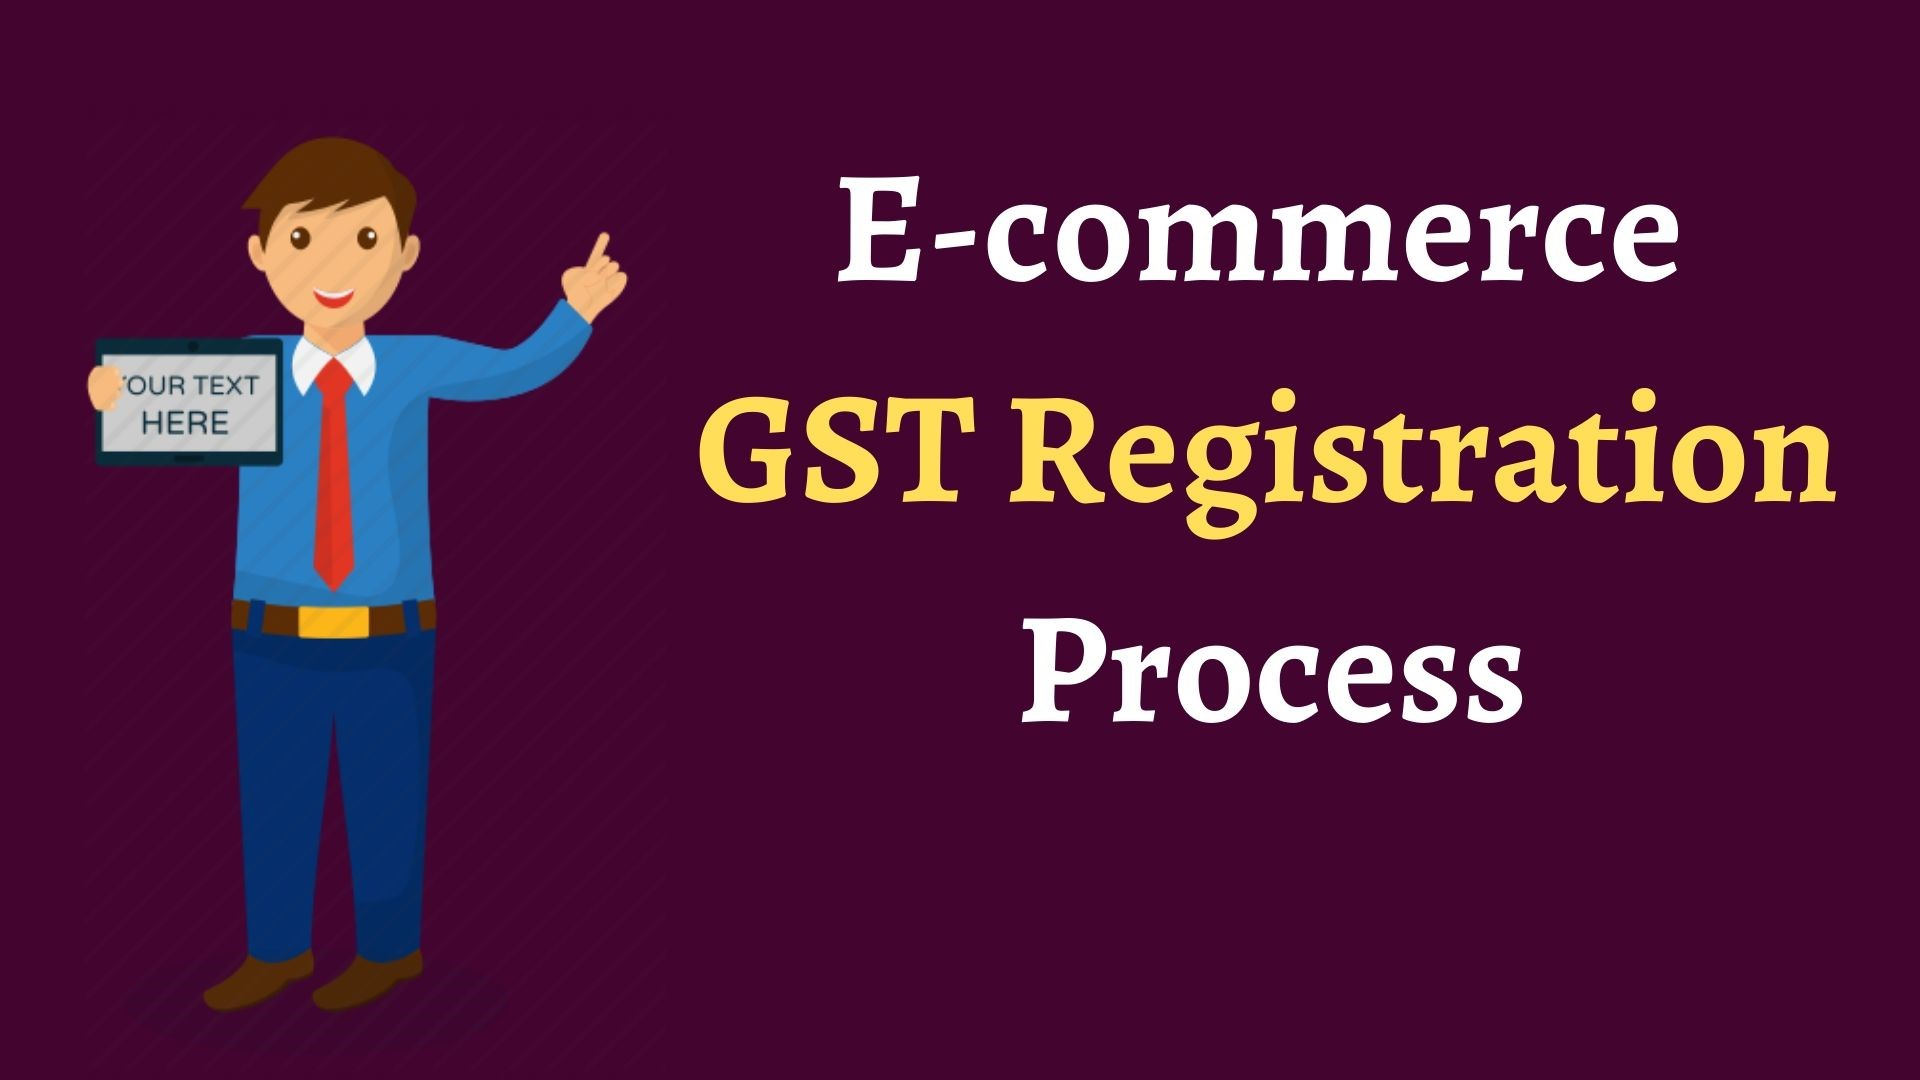 E-commerce GST Registration Process, GST Registration Process